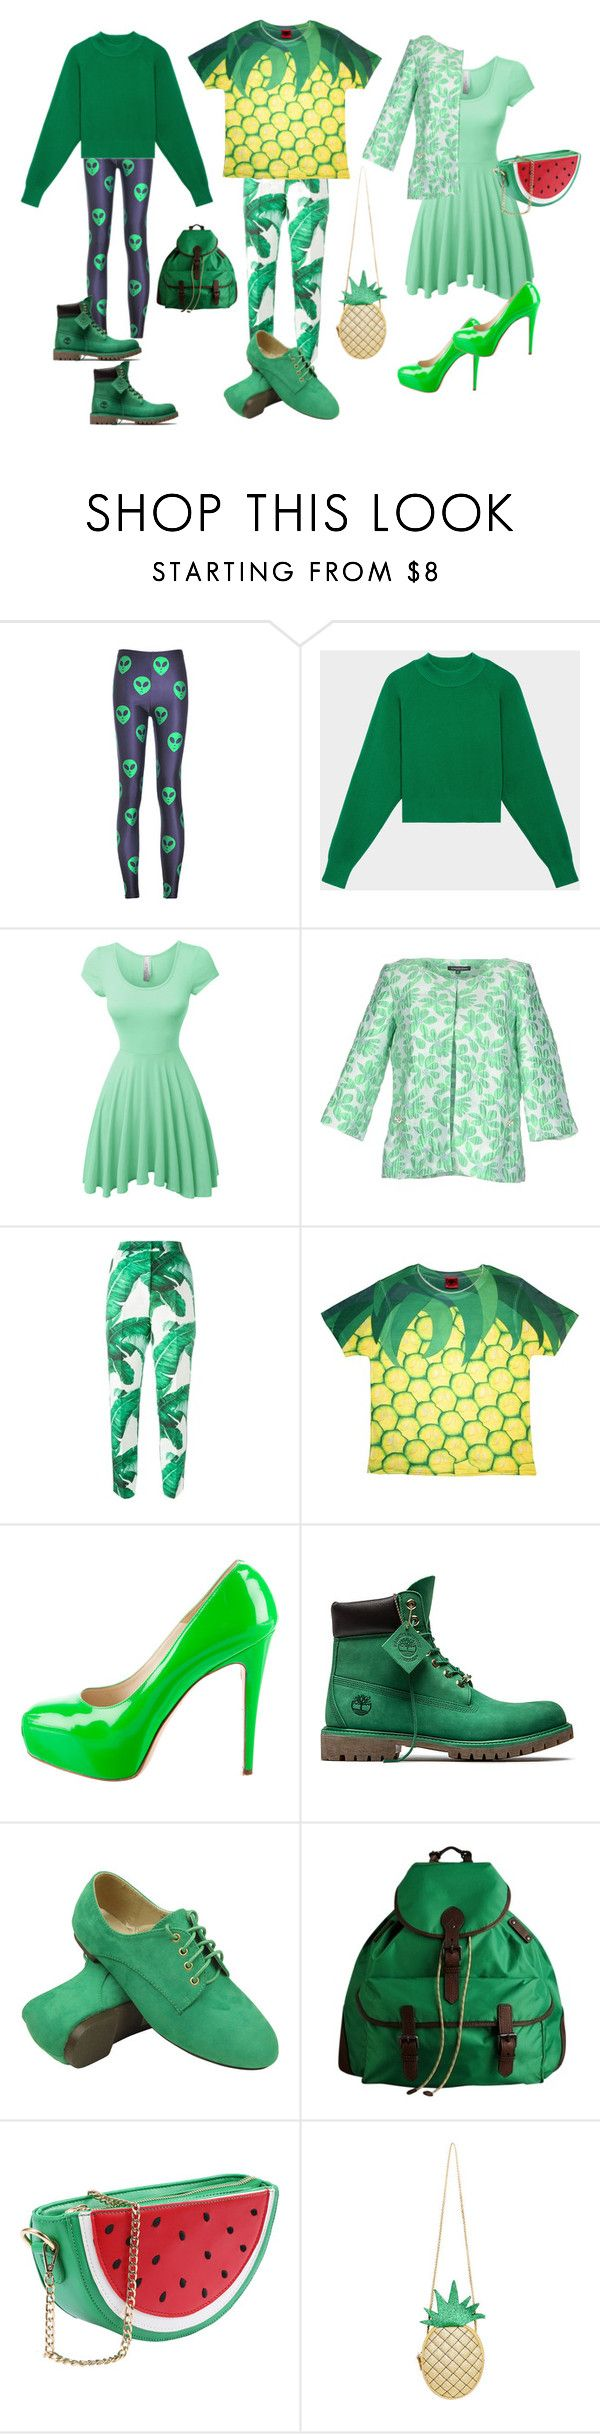 green outfits by clodie-durand on Polyvore featuring mode, LE3NO, DKNY, Dazzle & Jolt, La Camicia Bianca, Dolce&Gabbana, Chicnova Fashion, Brian Atwood, Timberland and Burberry